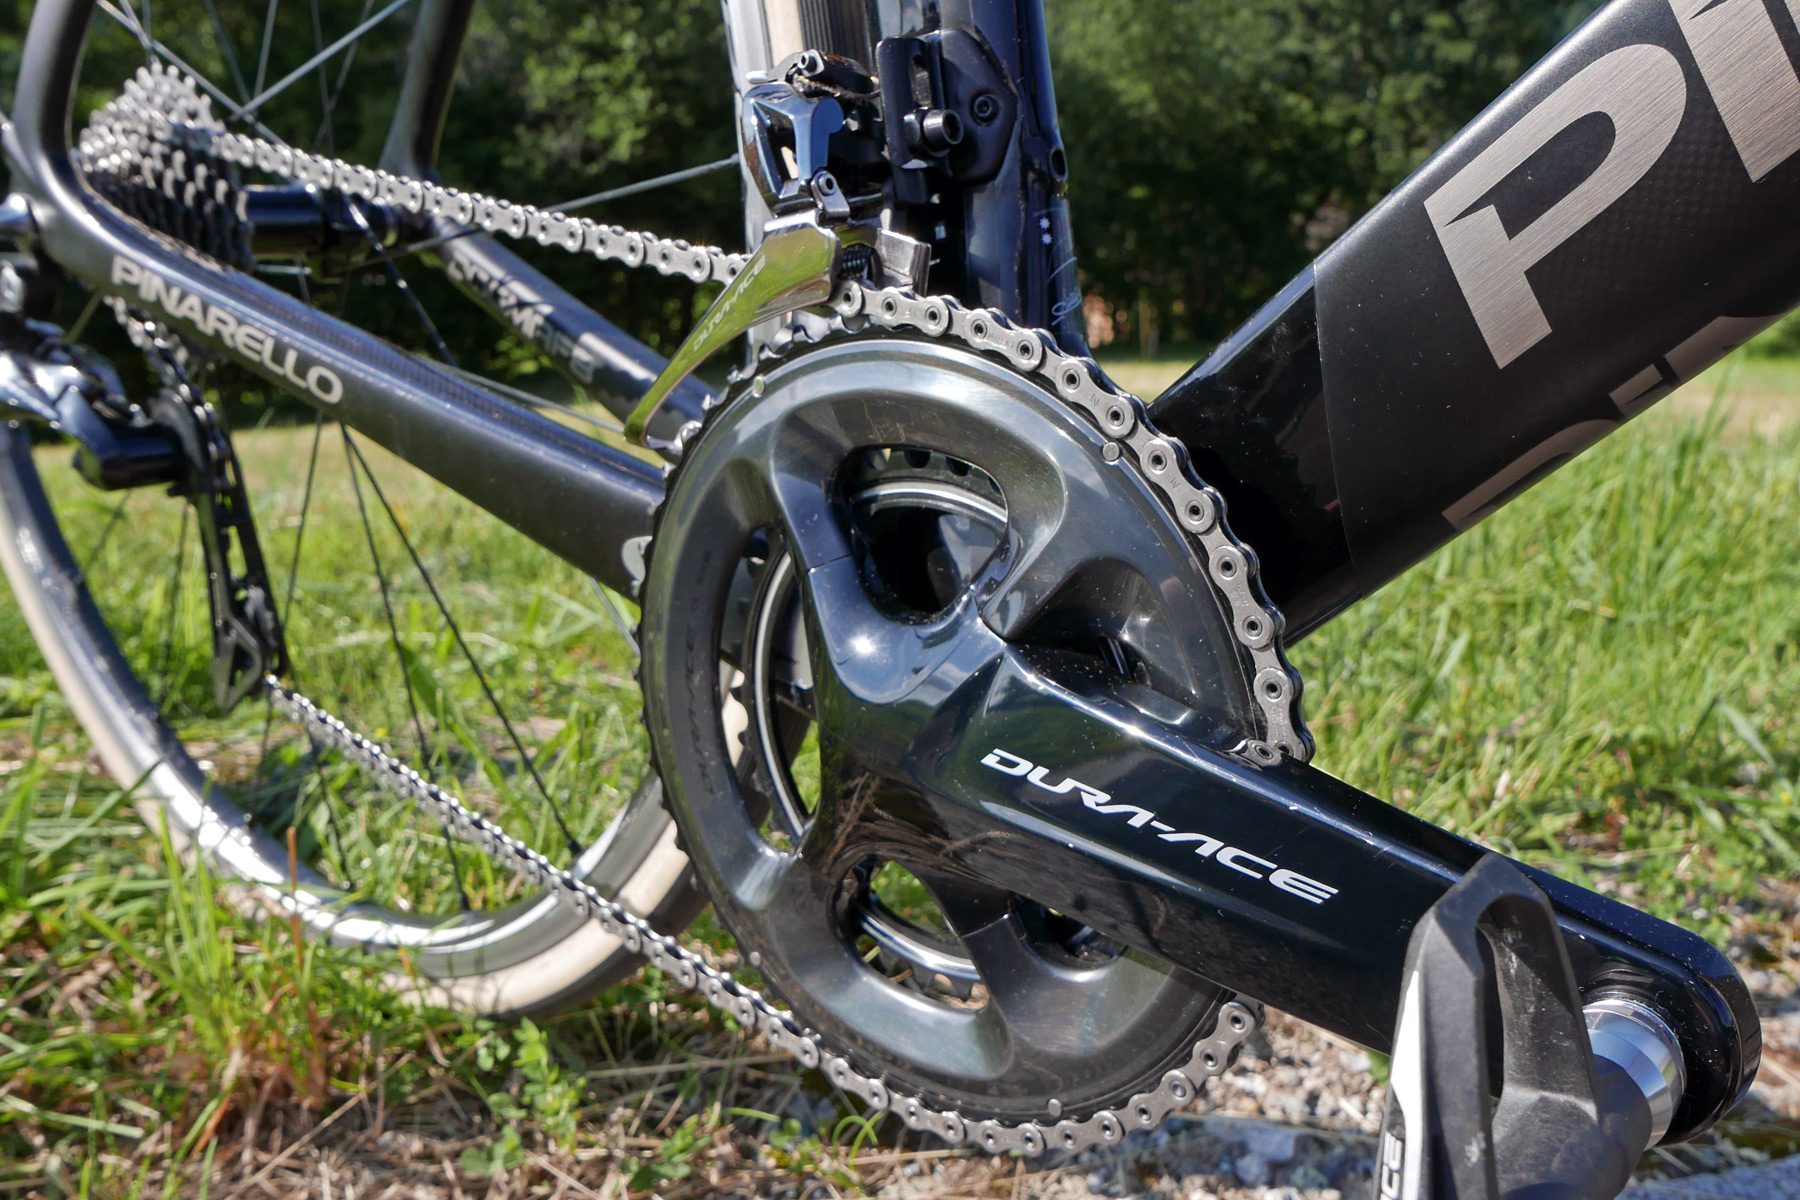 aa44055cbdd New Shimano Dura-Ace R9100 unveiled, includes a powermeter & disc brakes!